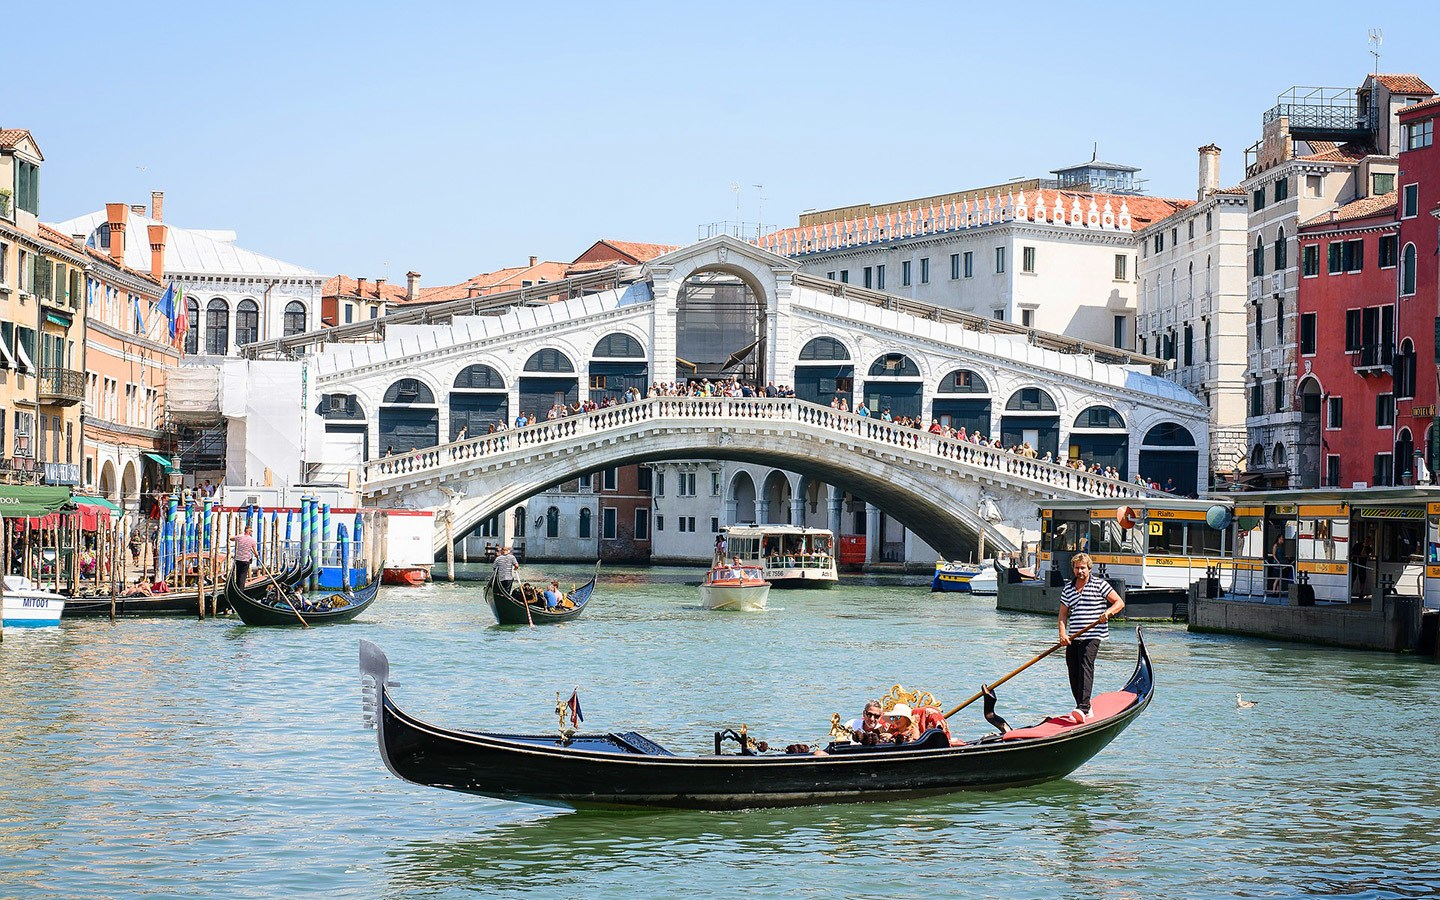 Gondolas and the Rialto Bridge in Venice